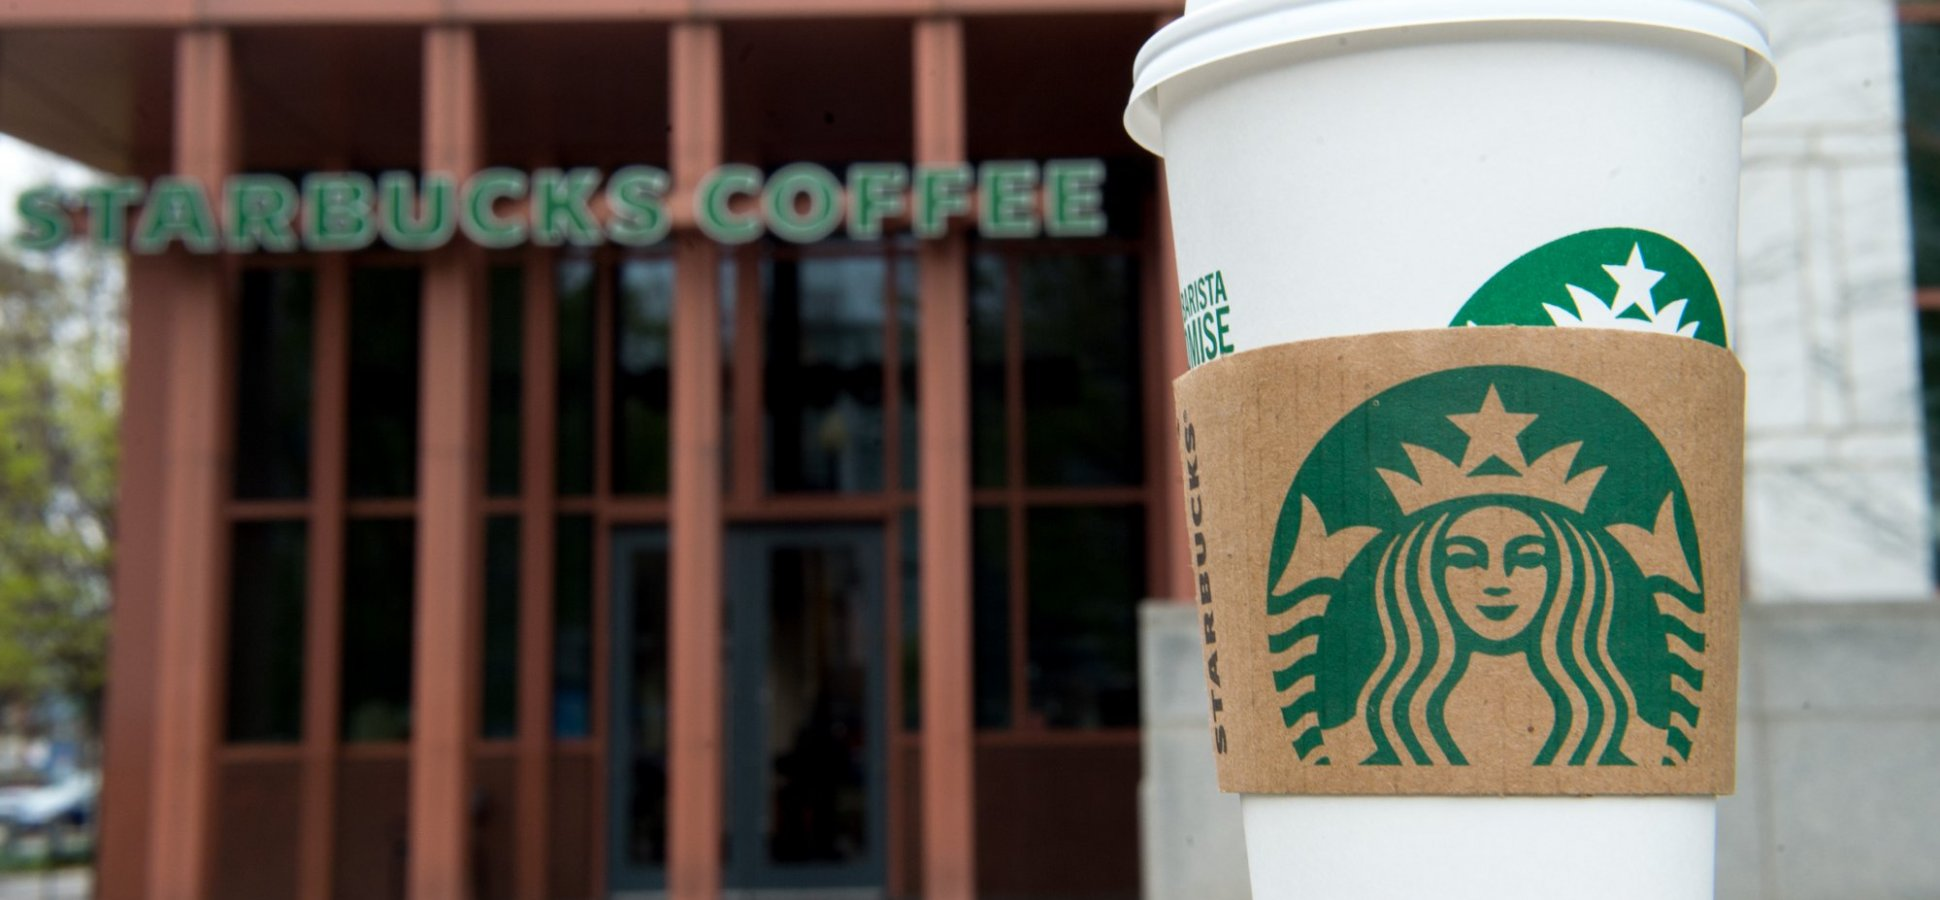 Starbucks Just Announced A Radical New Policy That Could Totally